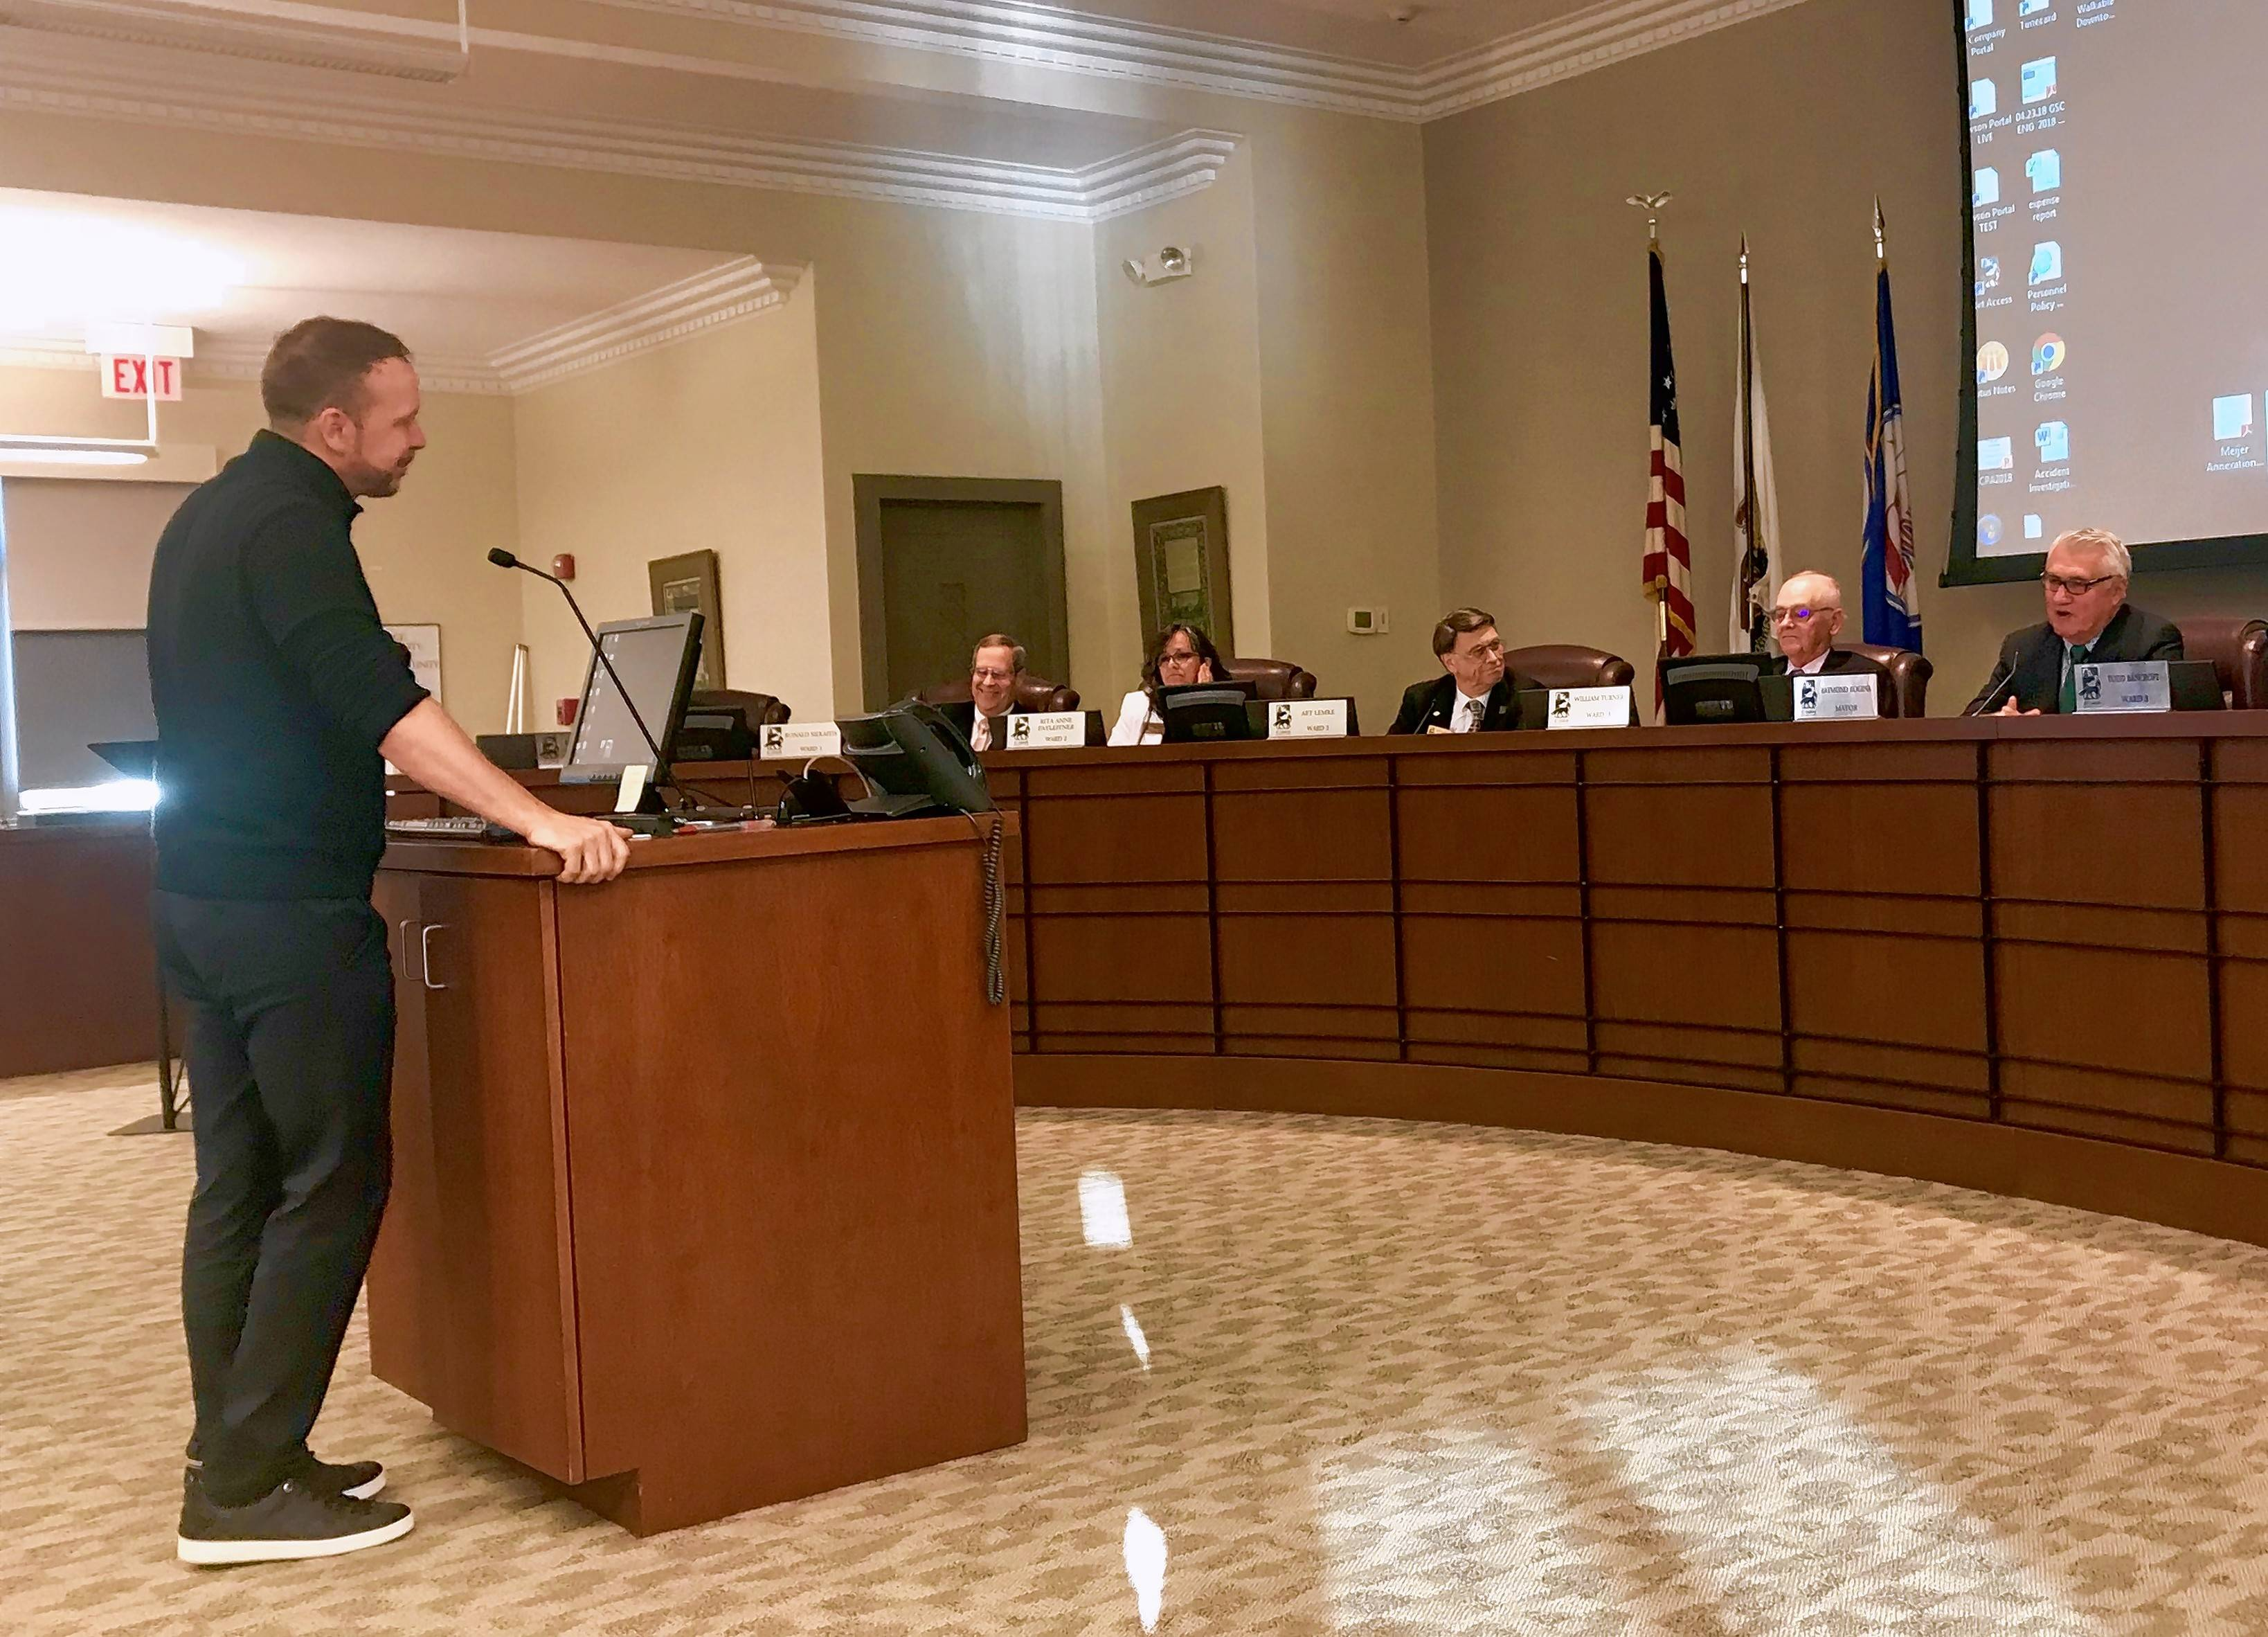 Actor and singer Donnie Wahlberg thanks the St. Charles city council Monday for approving plans for the newest Wahlburgers restaurant on the city's west side.